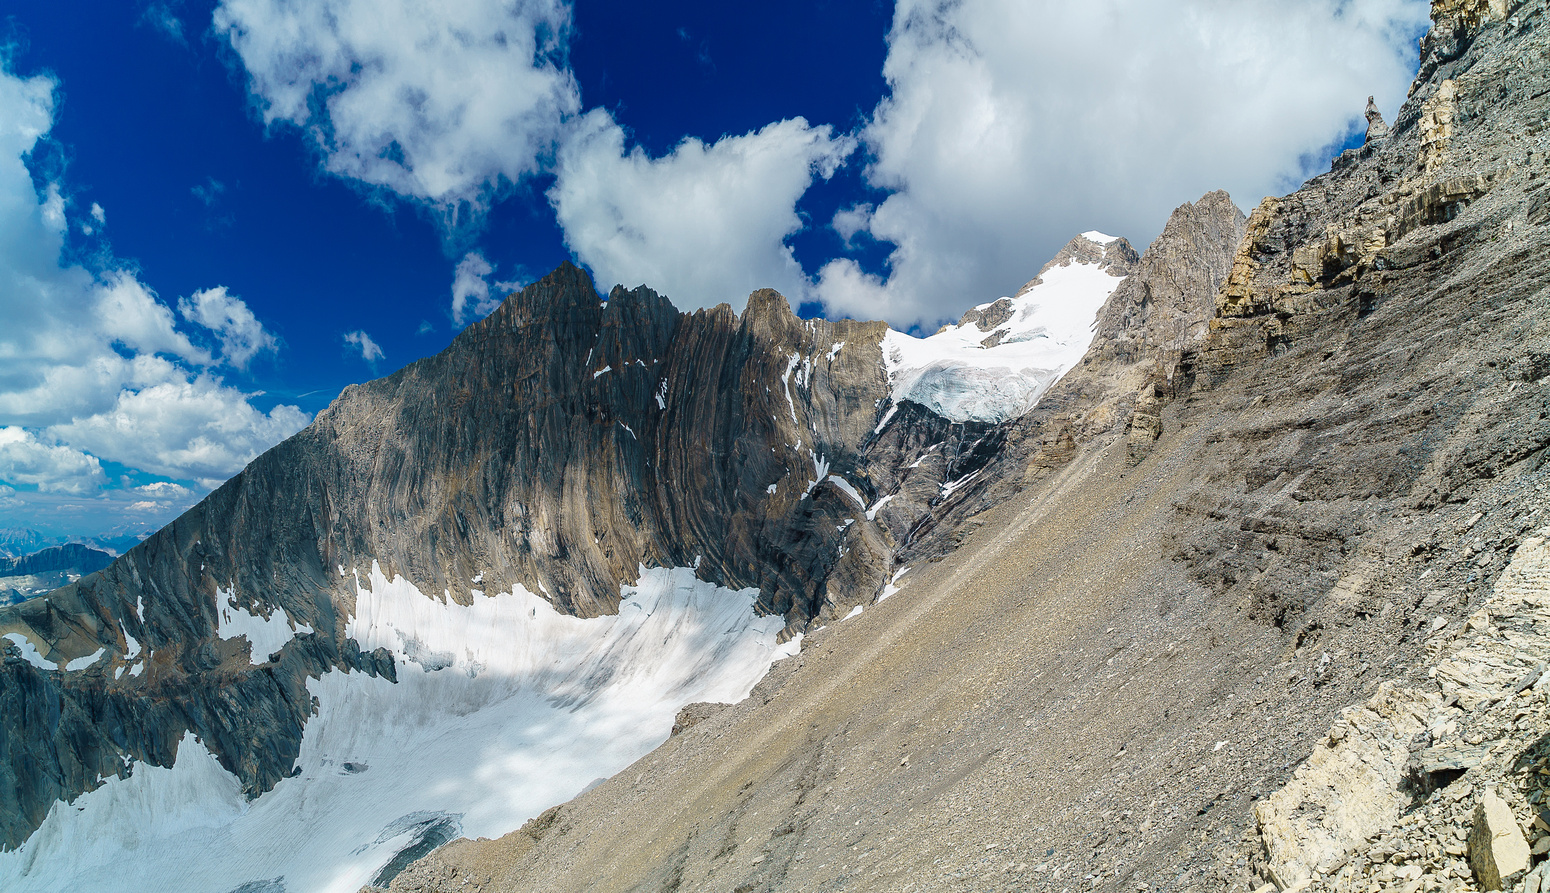 Looking back along the scree traverse from where we started the SW face ascent. King George visible in the distance.